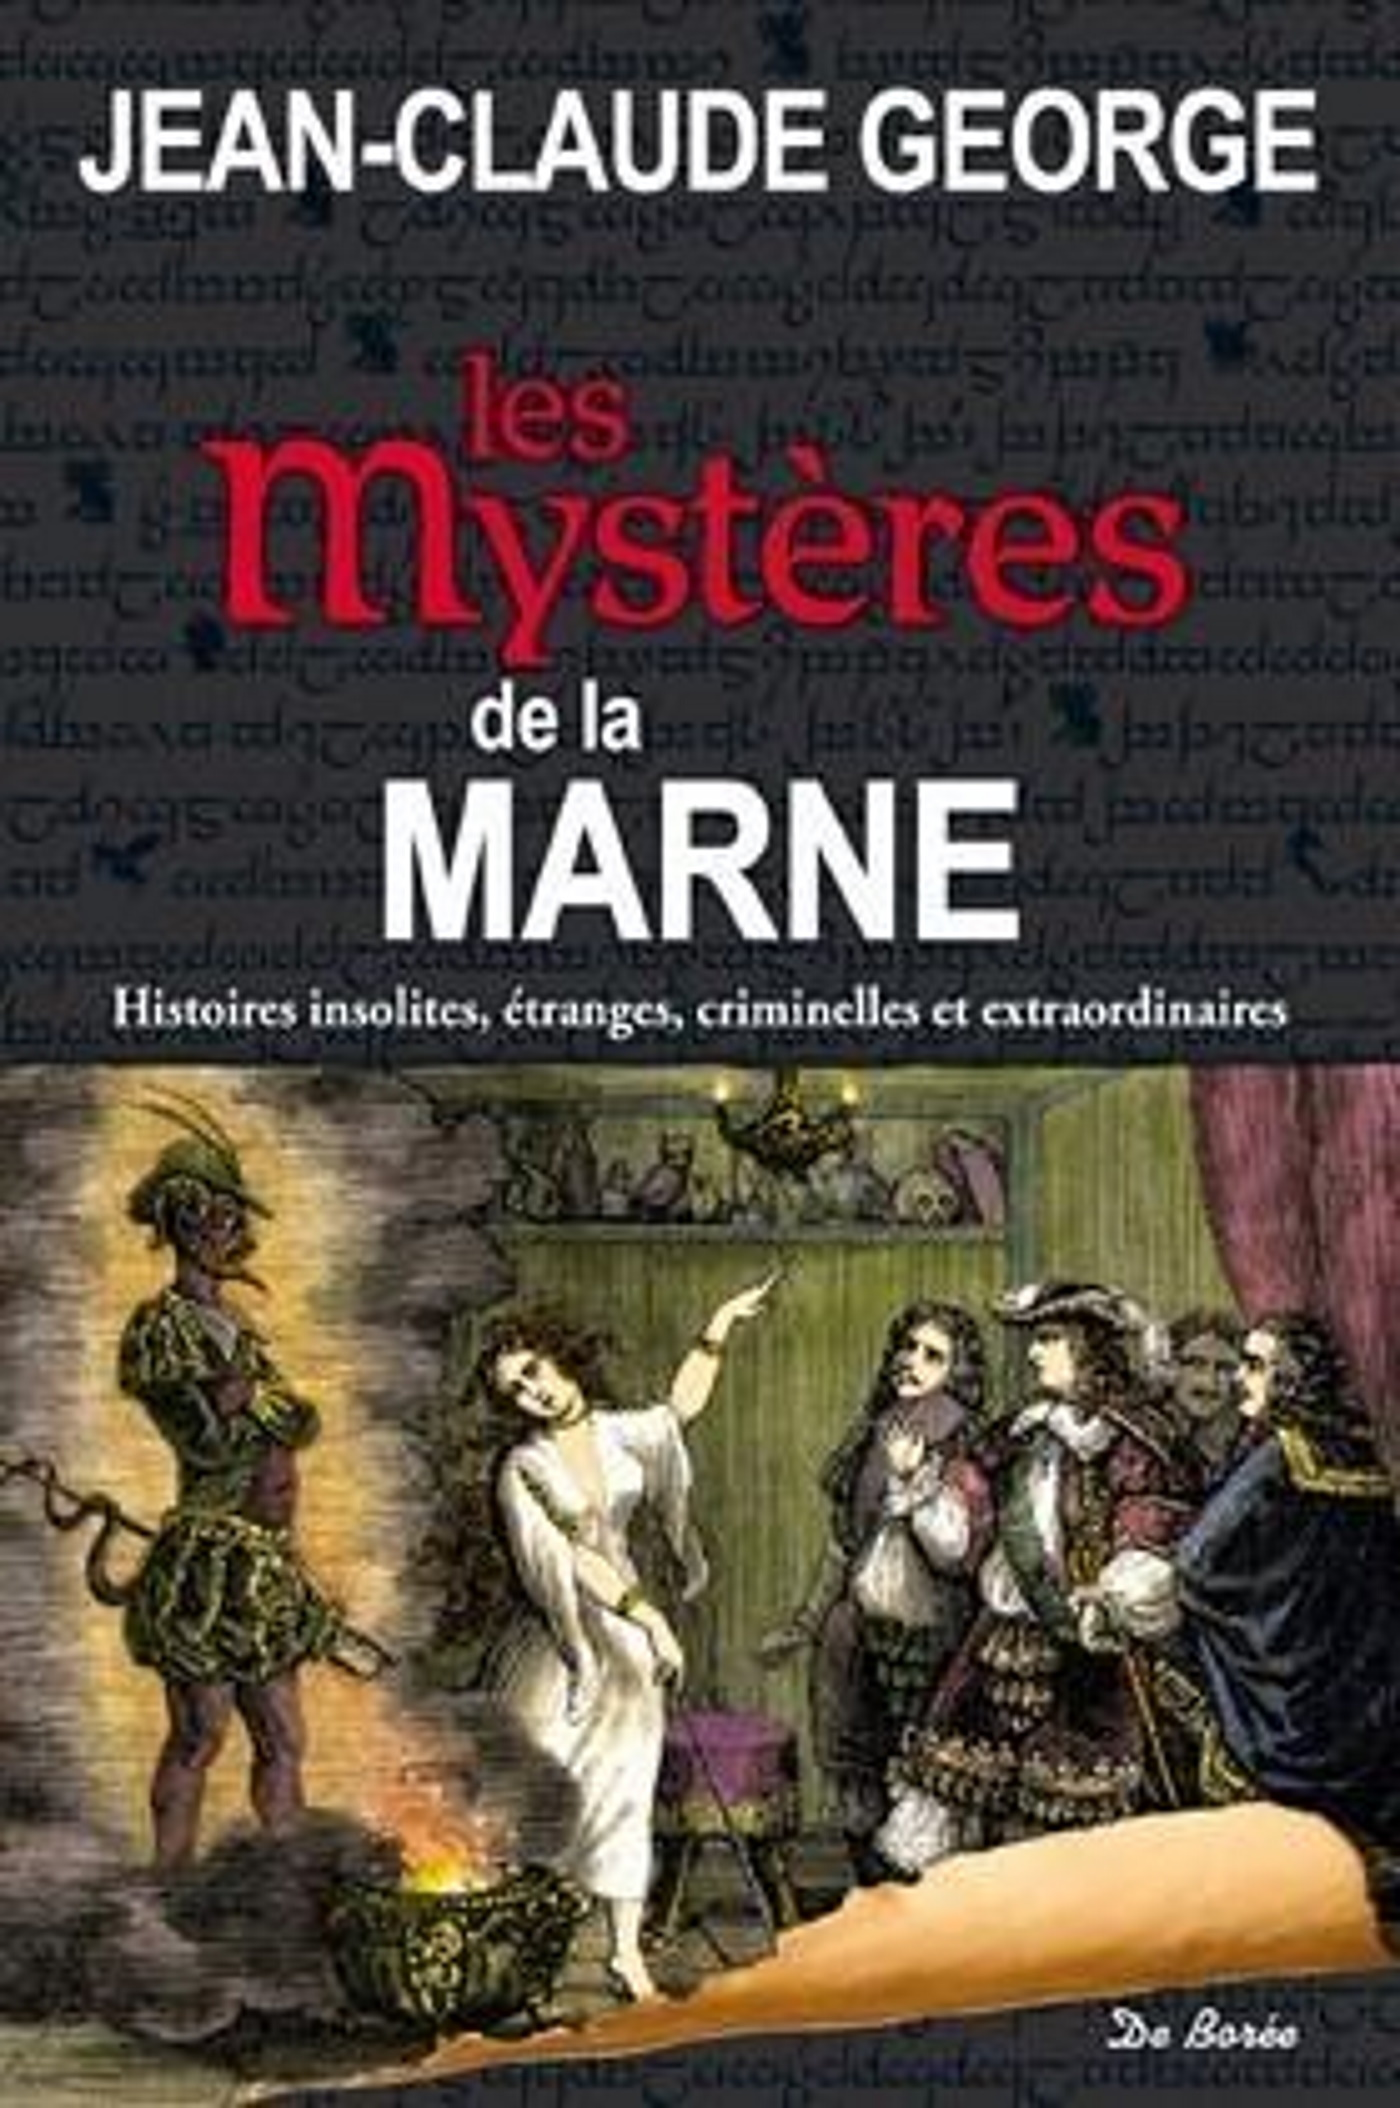 MARNE MYSTERES